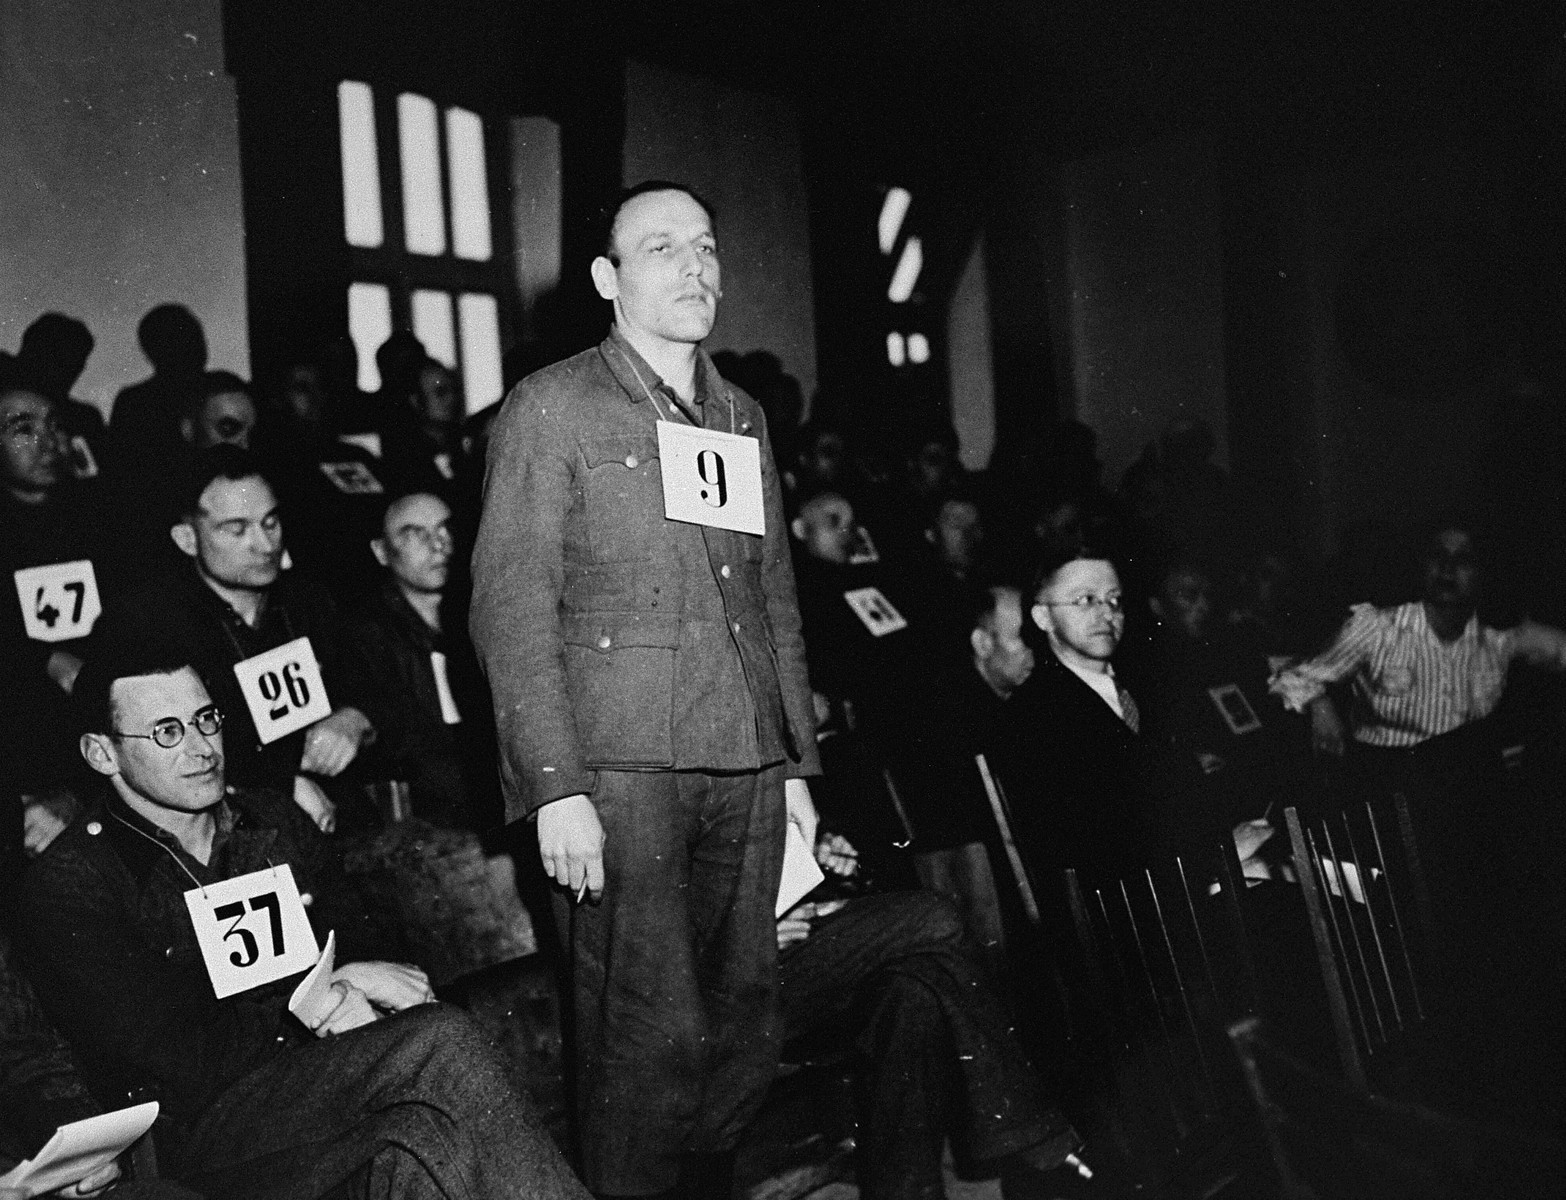 Former SS-Unterscharfuehrer Hans Diehl, a defendant at the trial of 61 former camp personnel and prisoners from Mauthausen, stands in his place in the defendants' dock.    Diehl was convicted and sentenced to death on May 13, 1946.